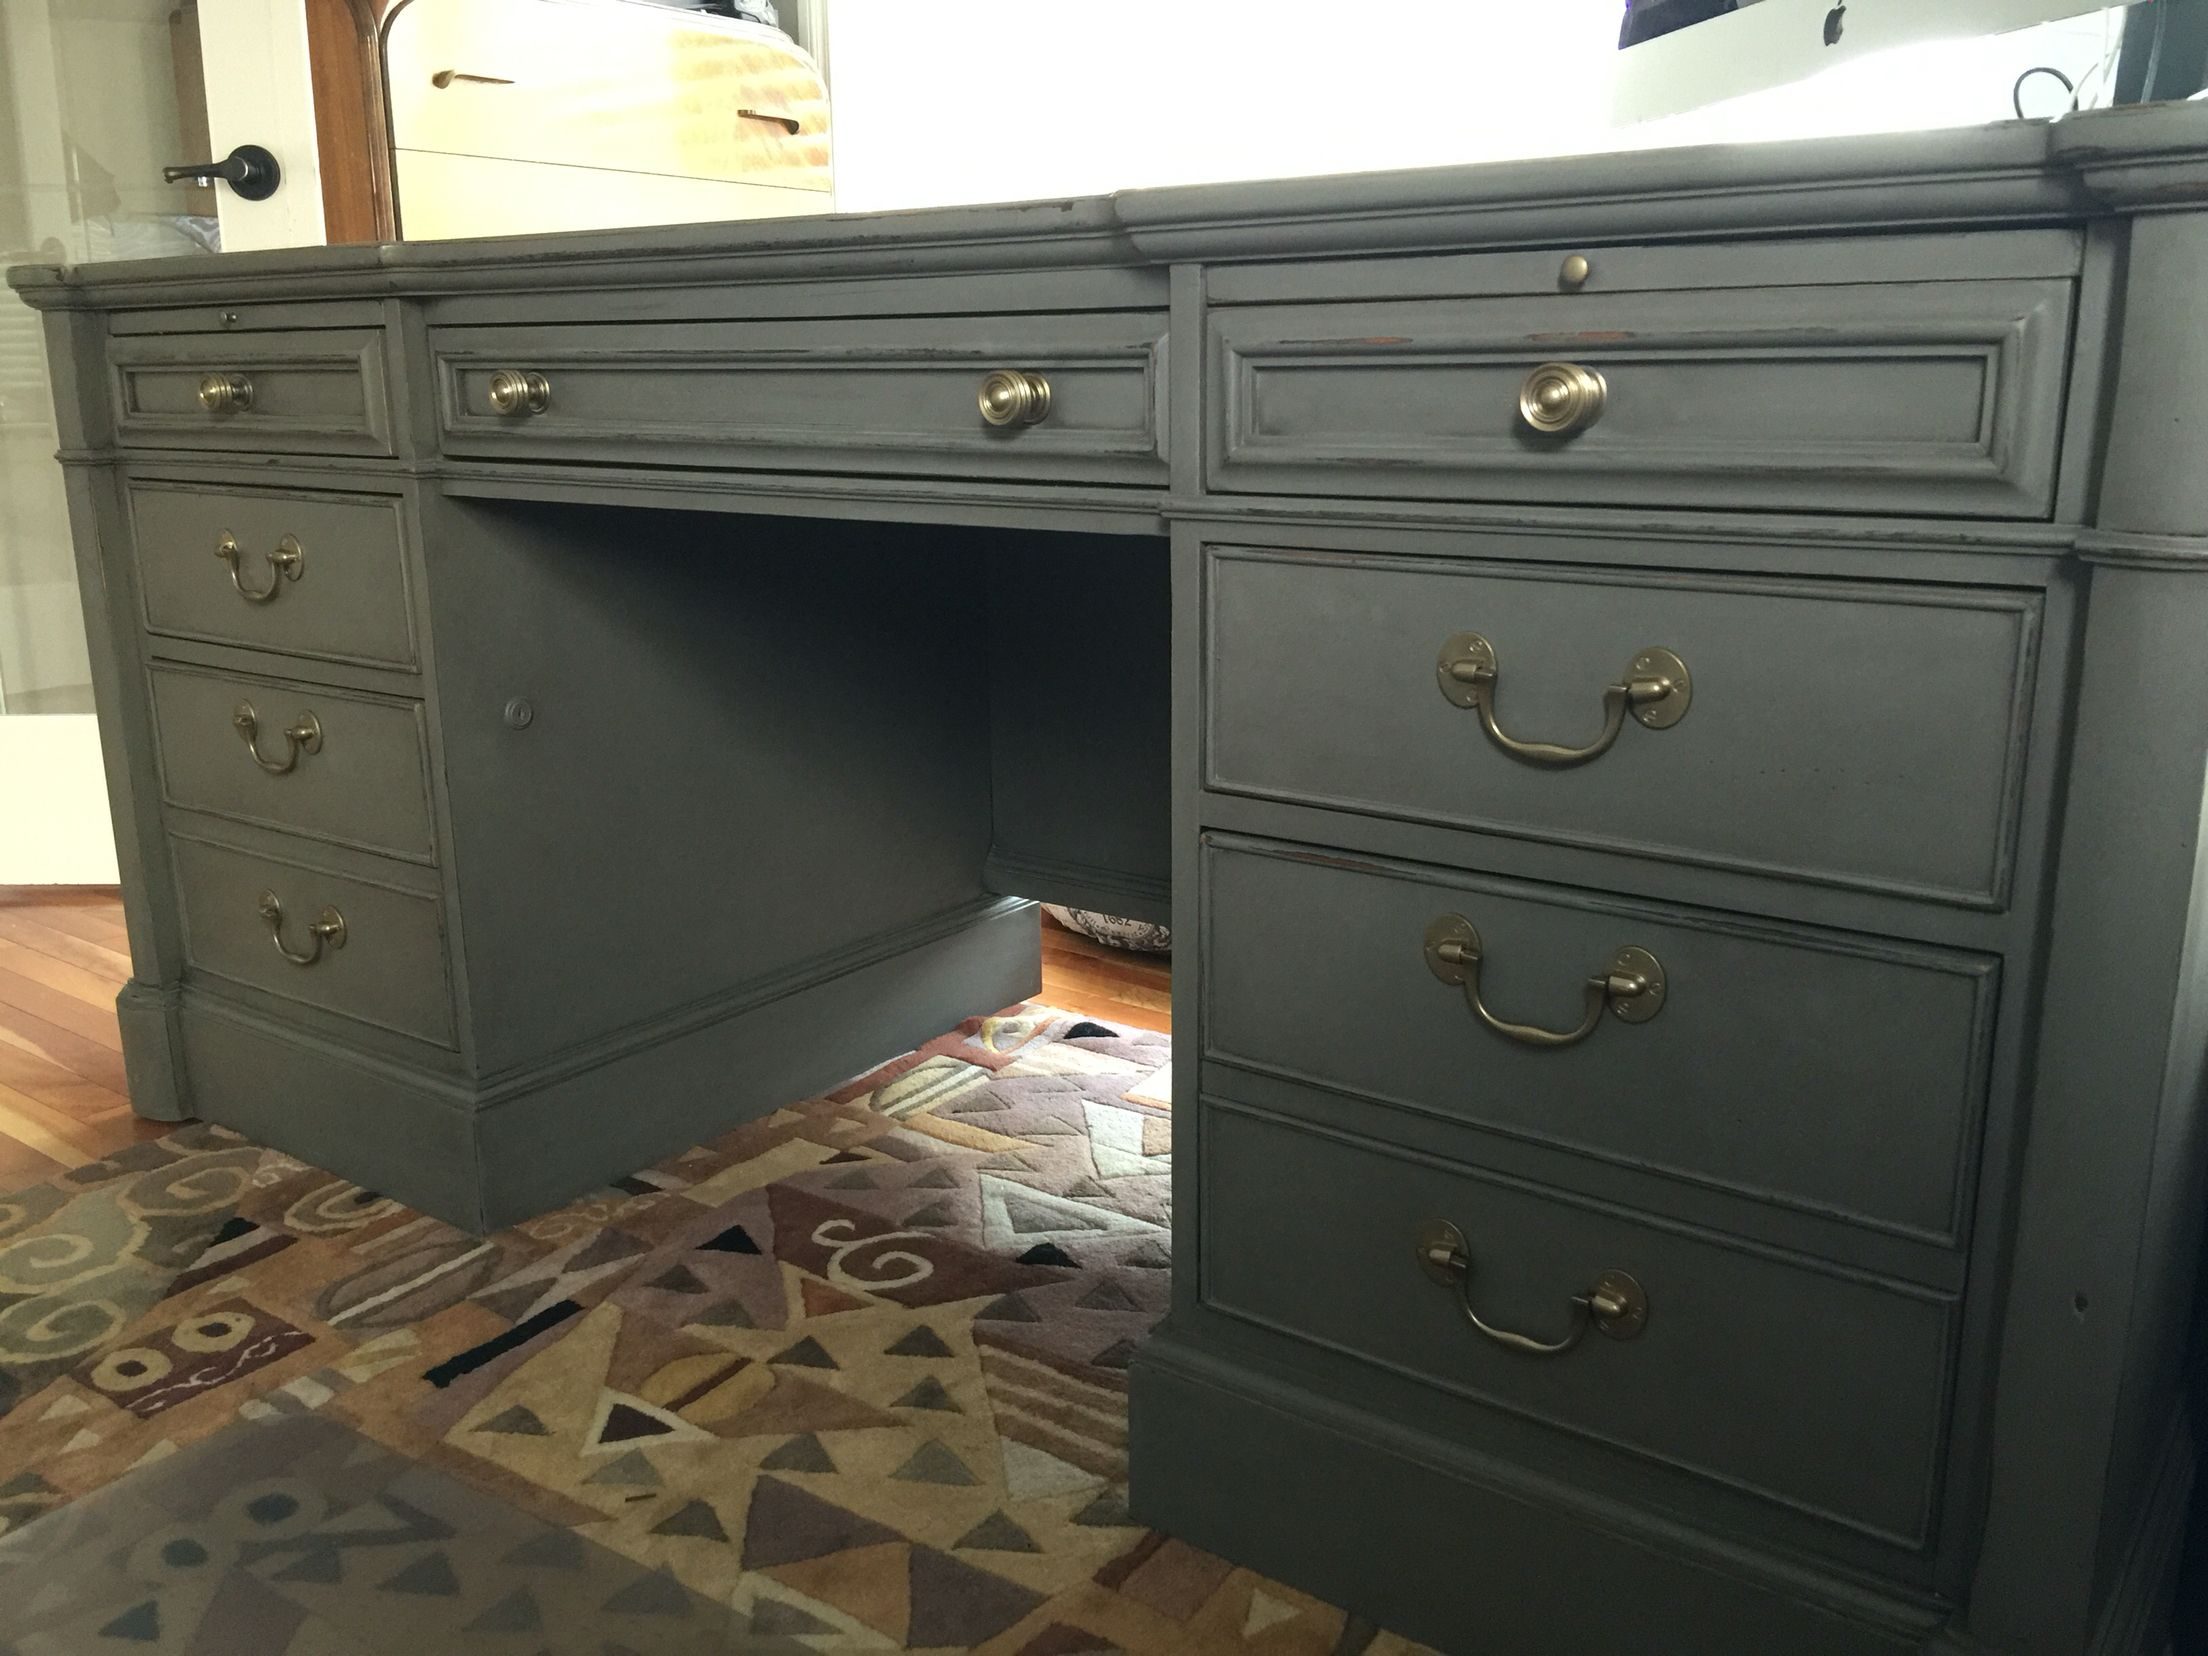 Painted Desks executive desk refinished in country chic cobblestone and dark wax